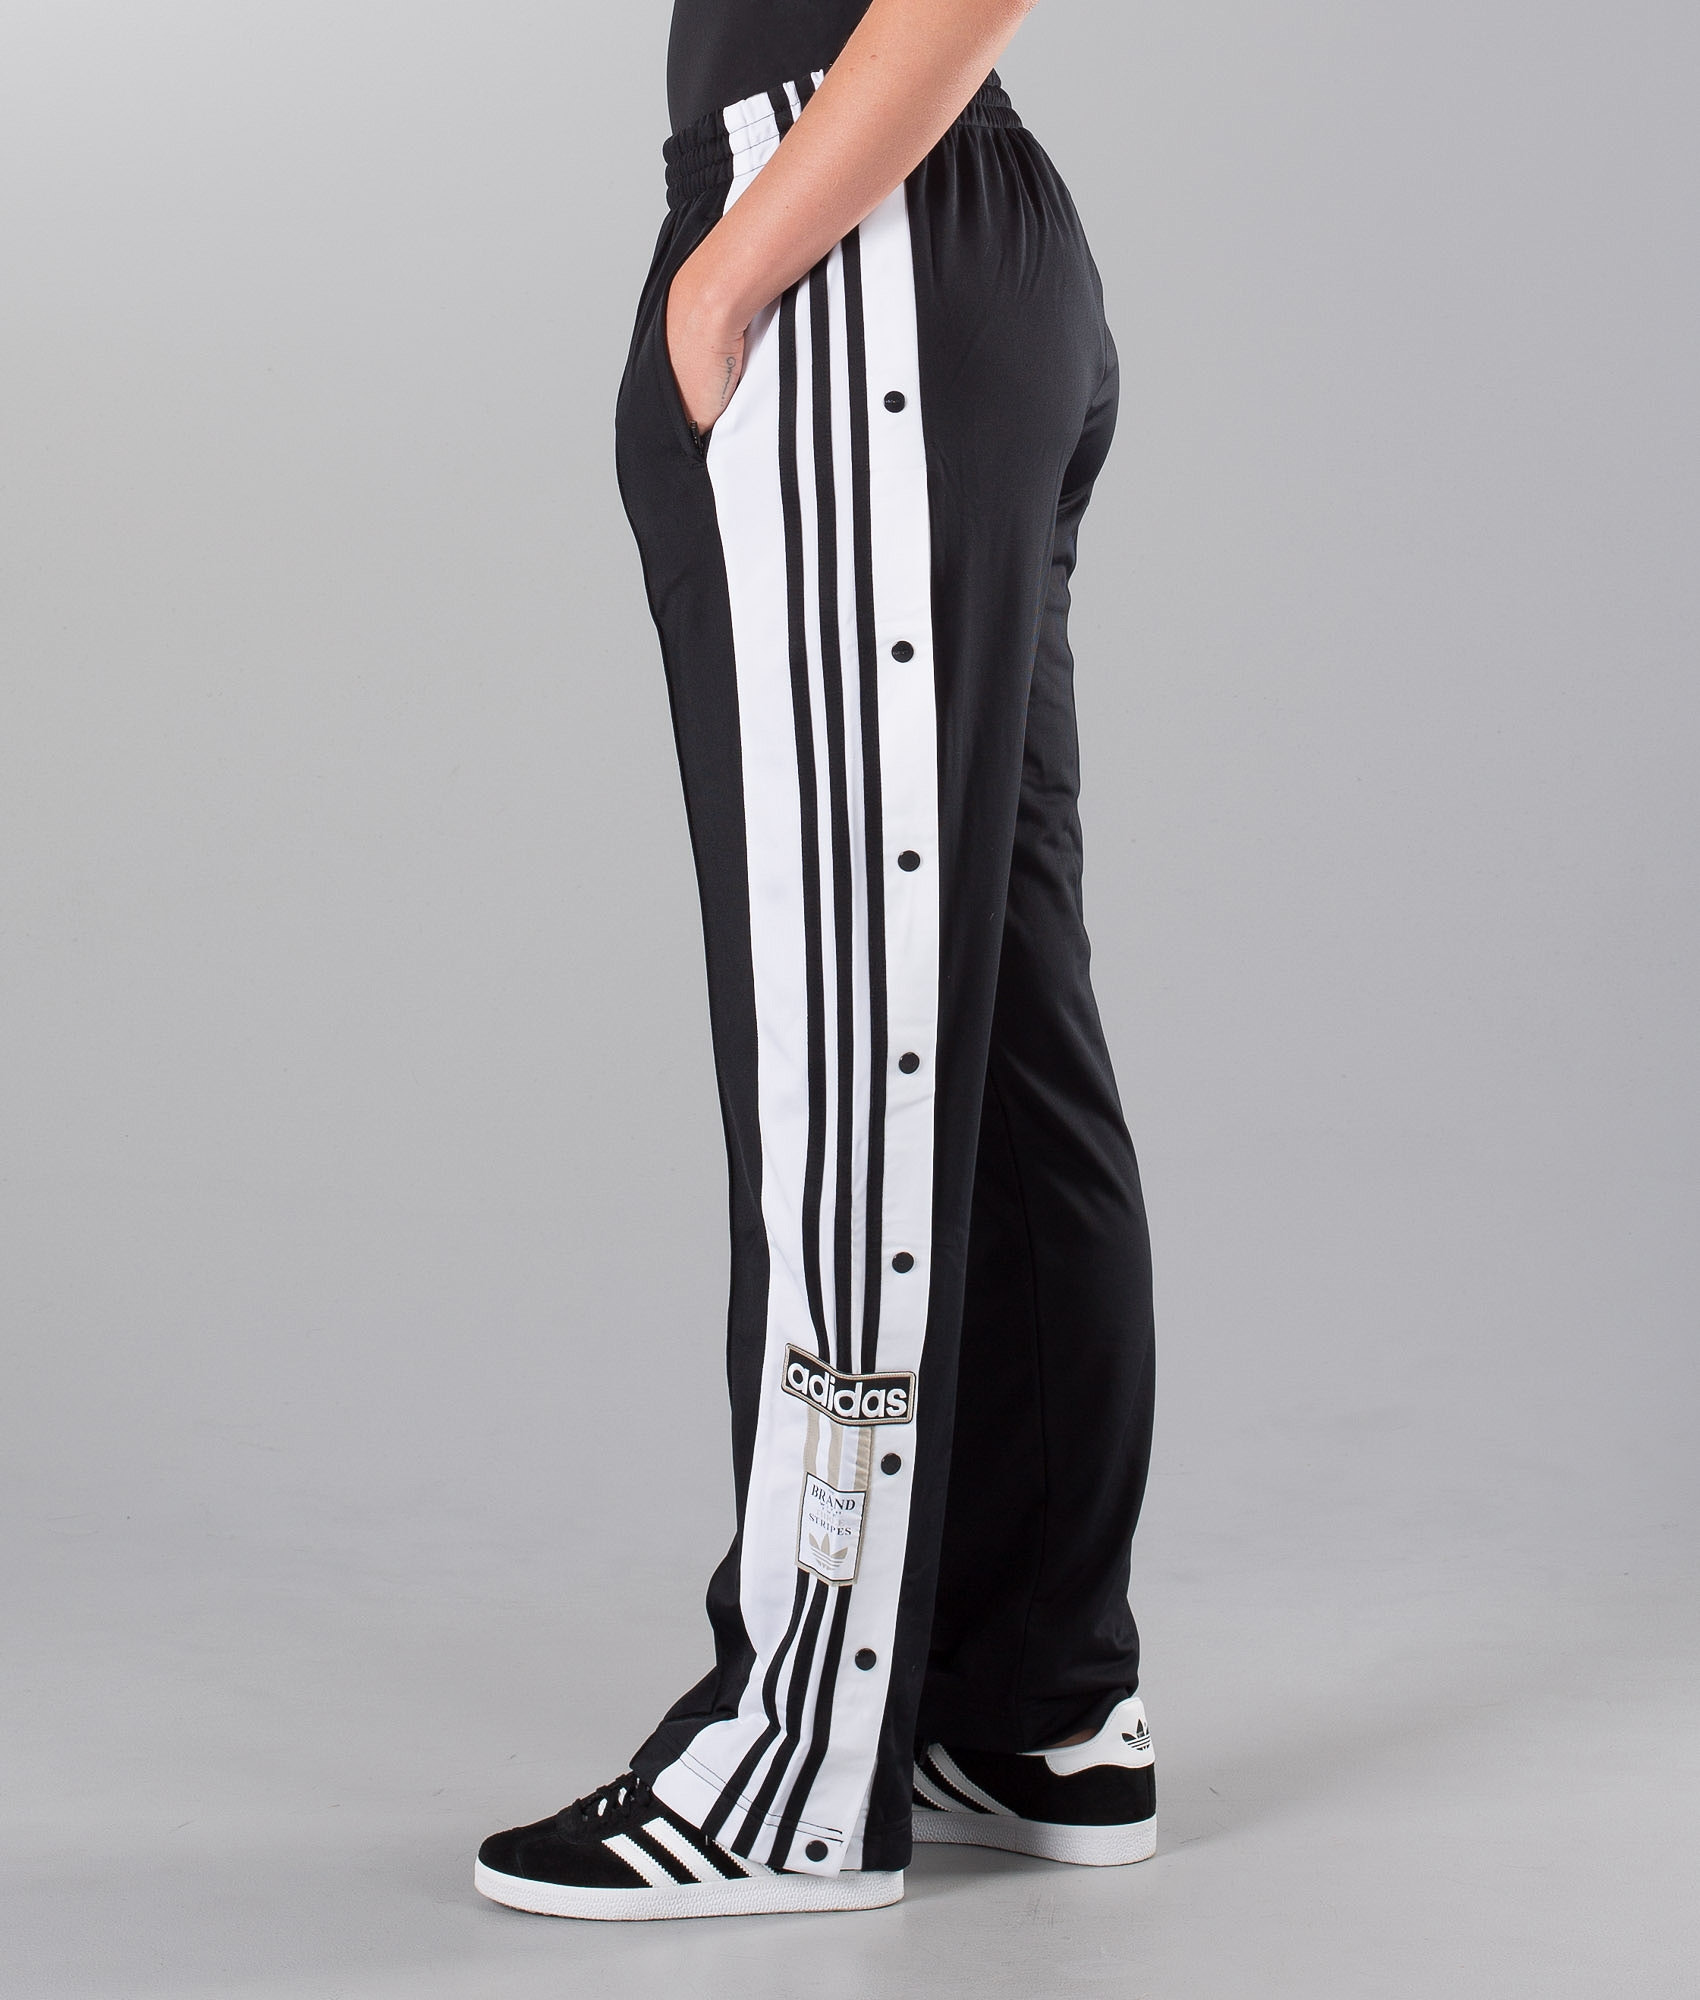 Adidas Originals Adibreak Pantalon 0853ae879ca